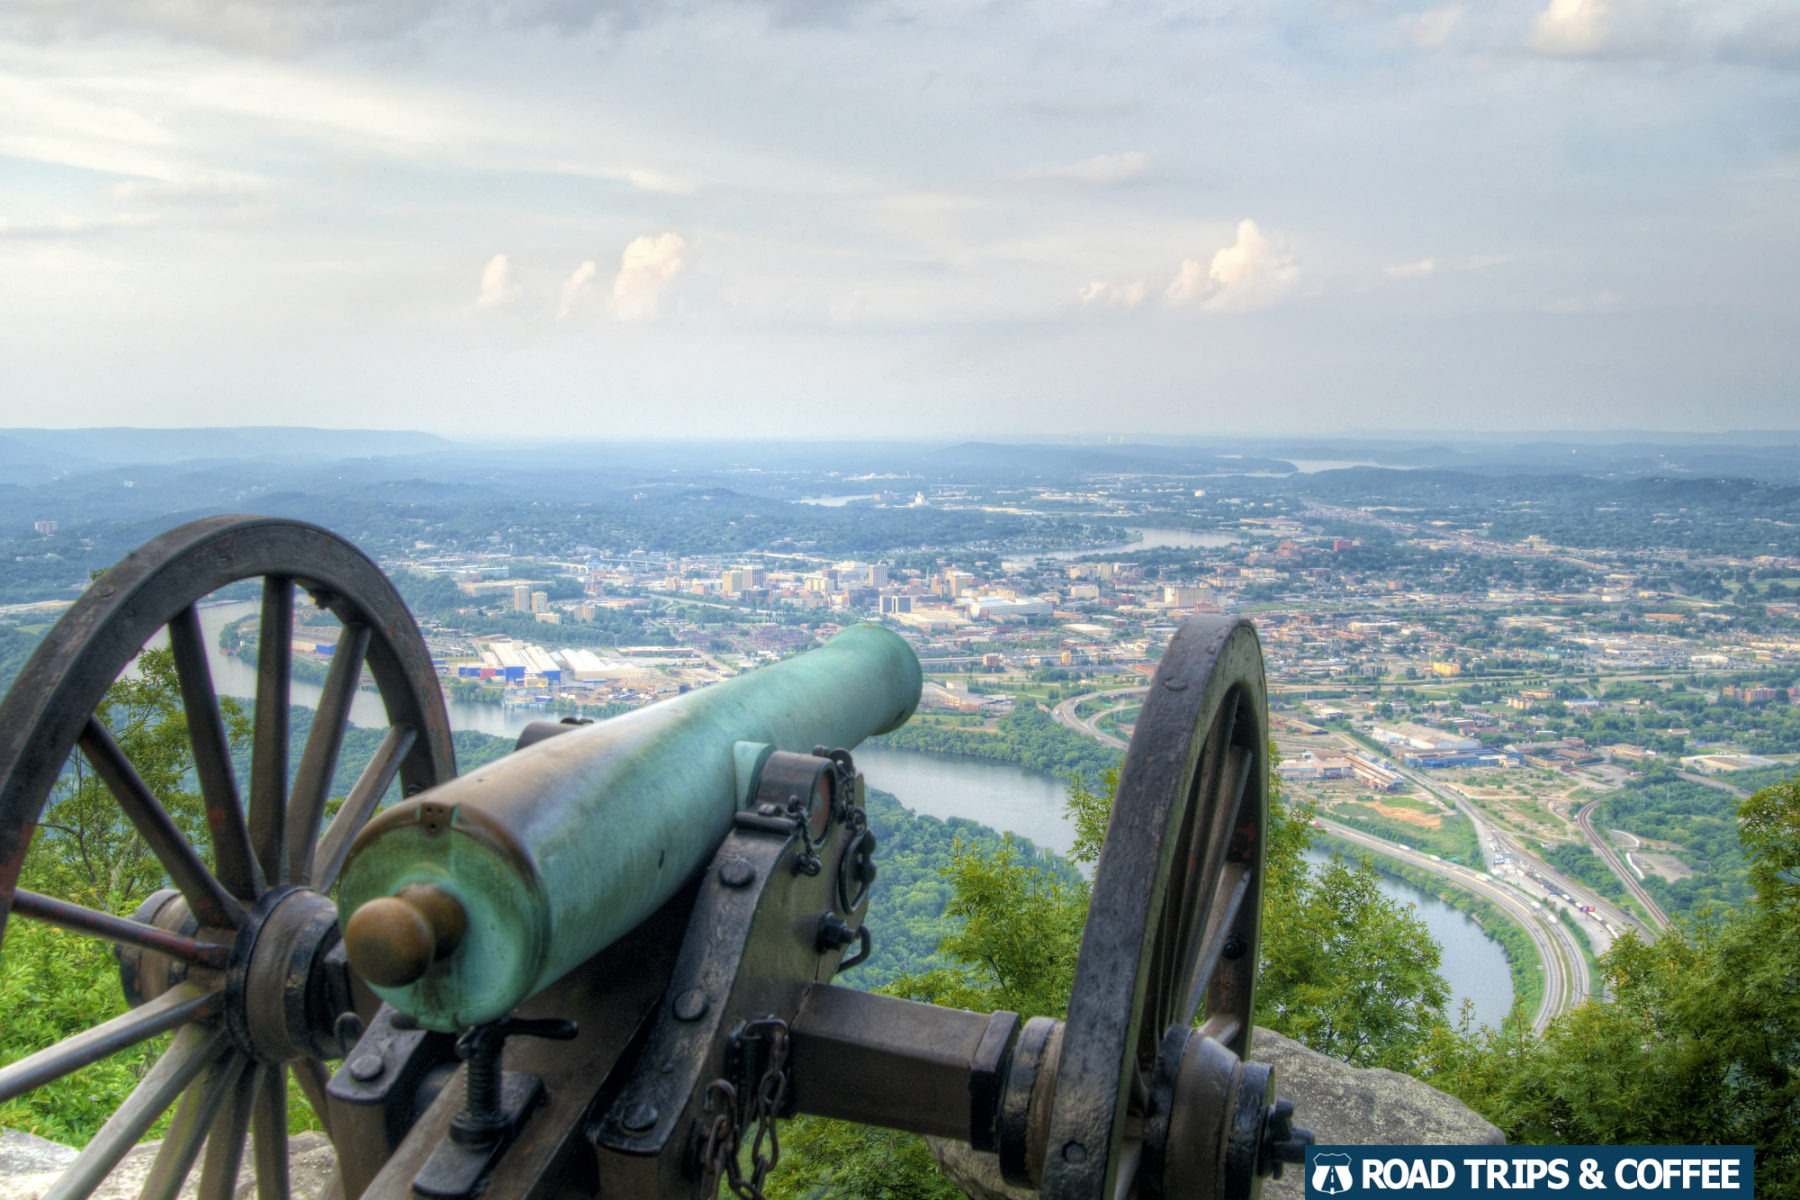 A canon on display at Point Park with a view of downtown Chattanooga, Tennessee in the distance